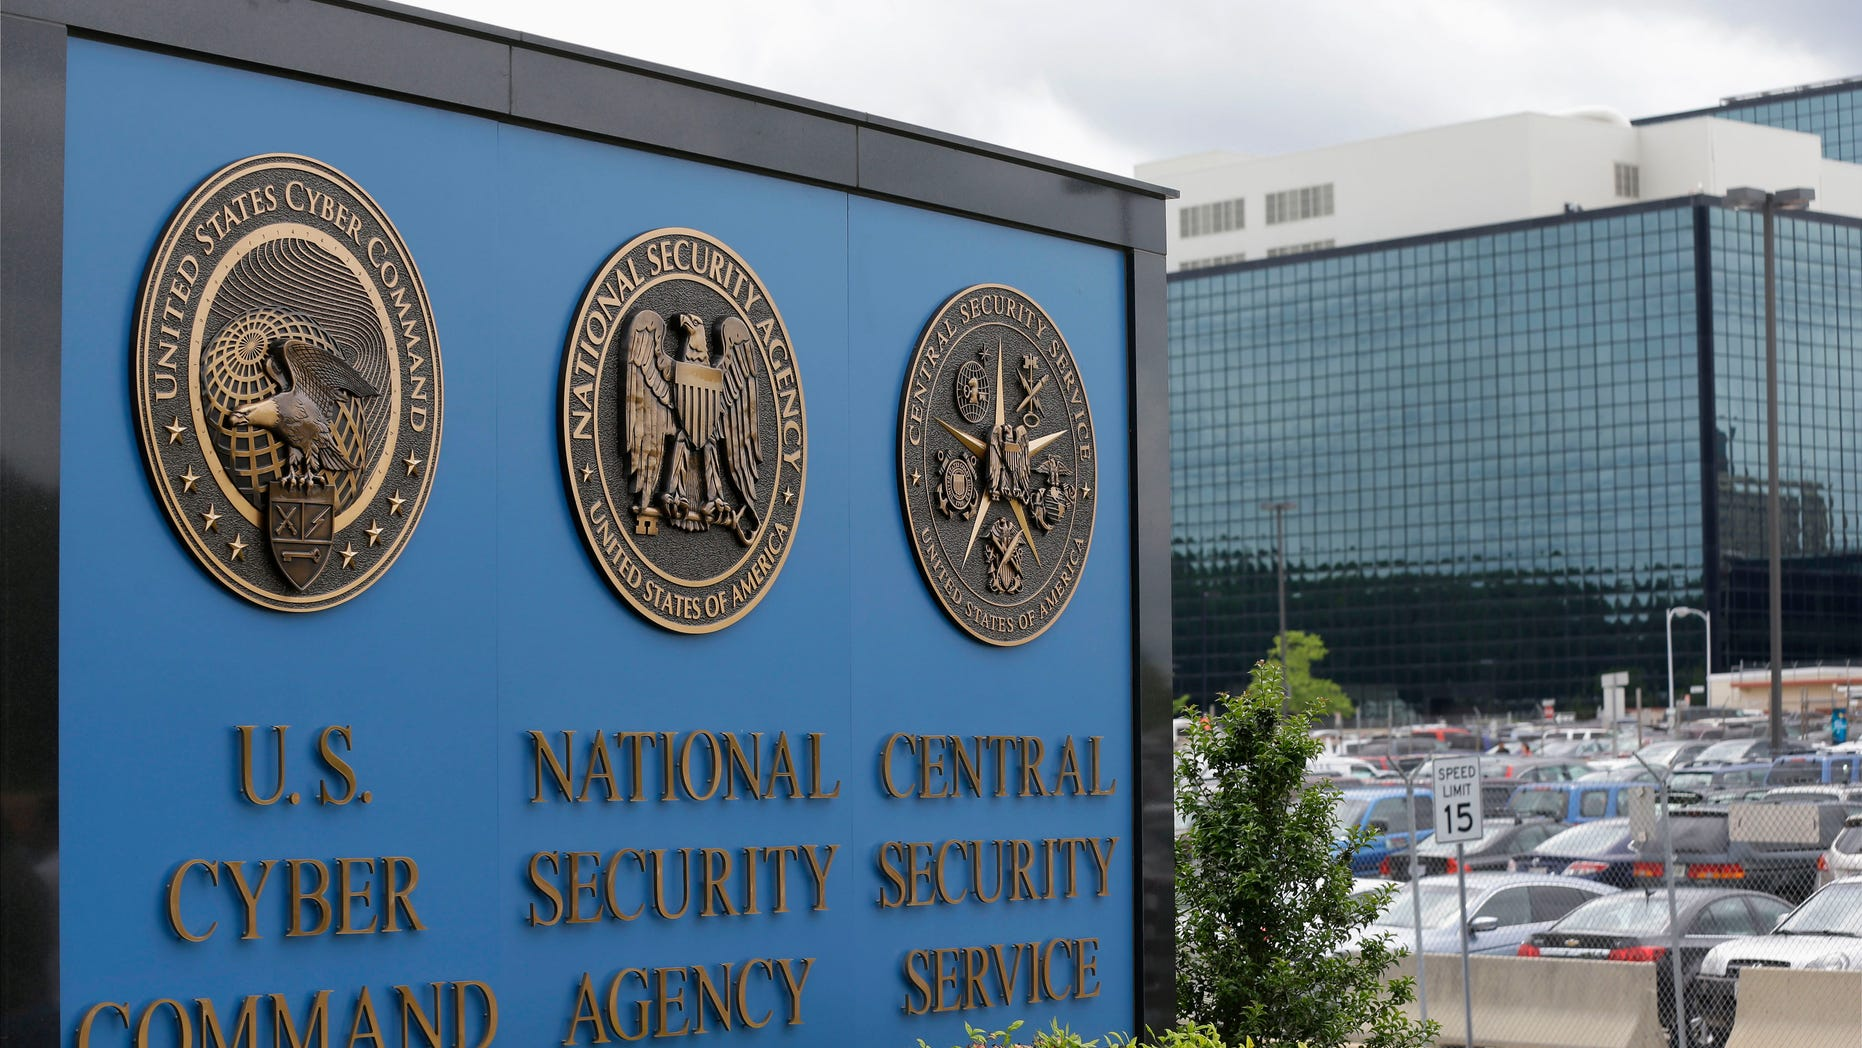 June 6, 2013: National Security Agency campus in Fort Meade, Md.